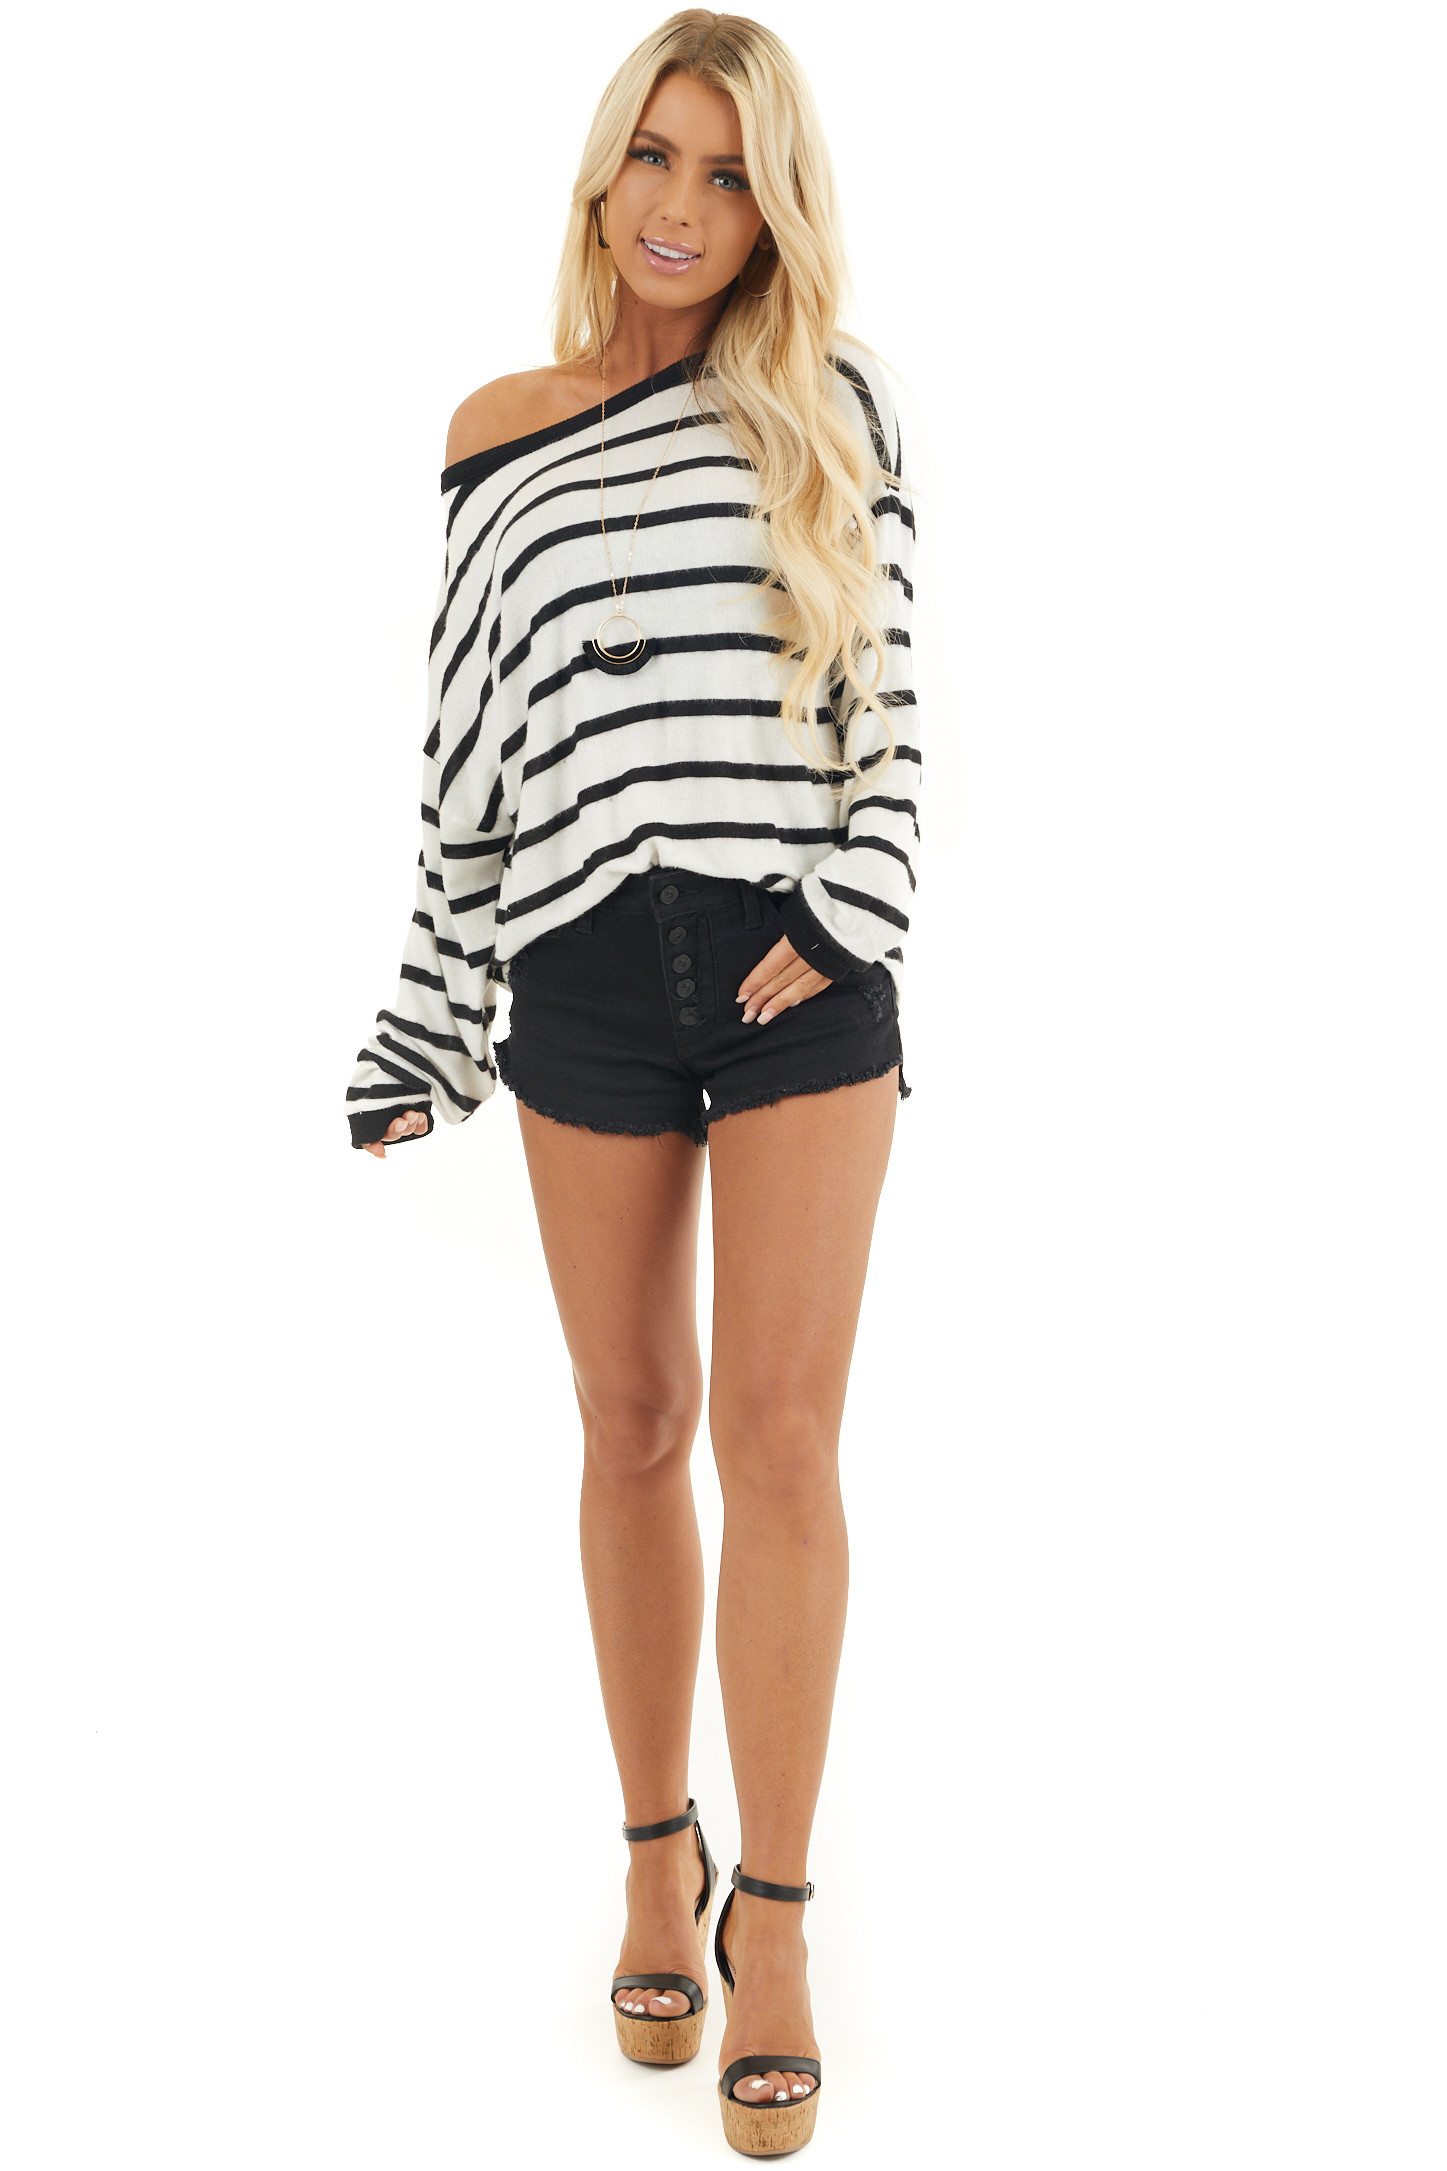 Off White and Black Stripe Long Sleeve Loose Knit Top